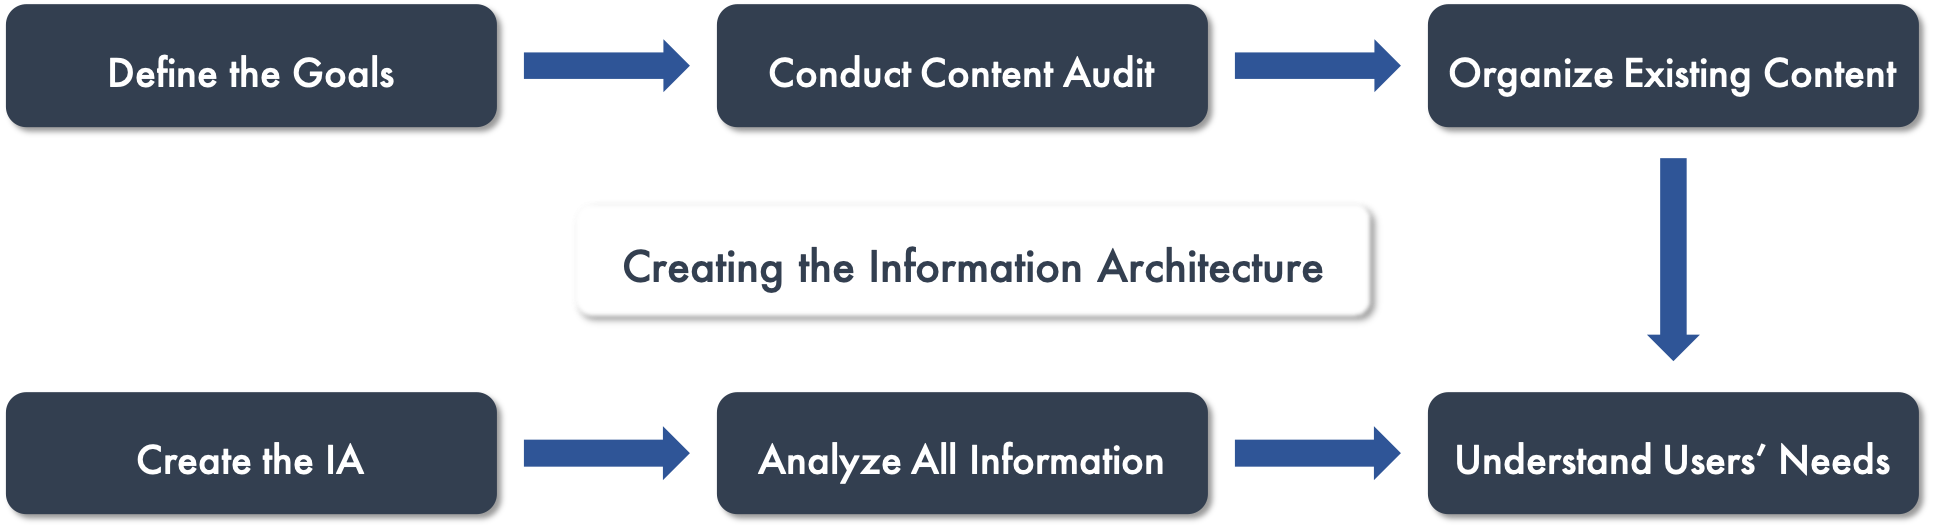 Creating the Information Architecture